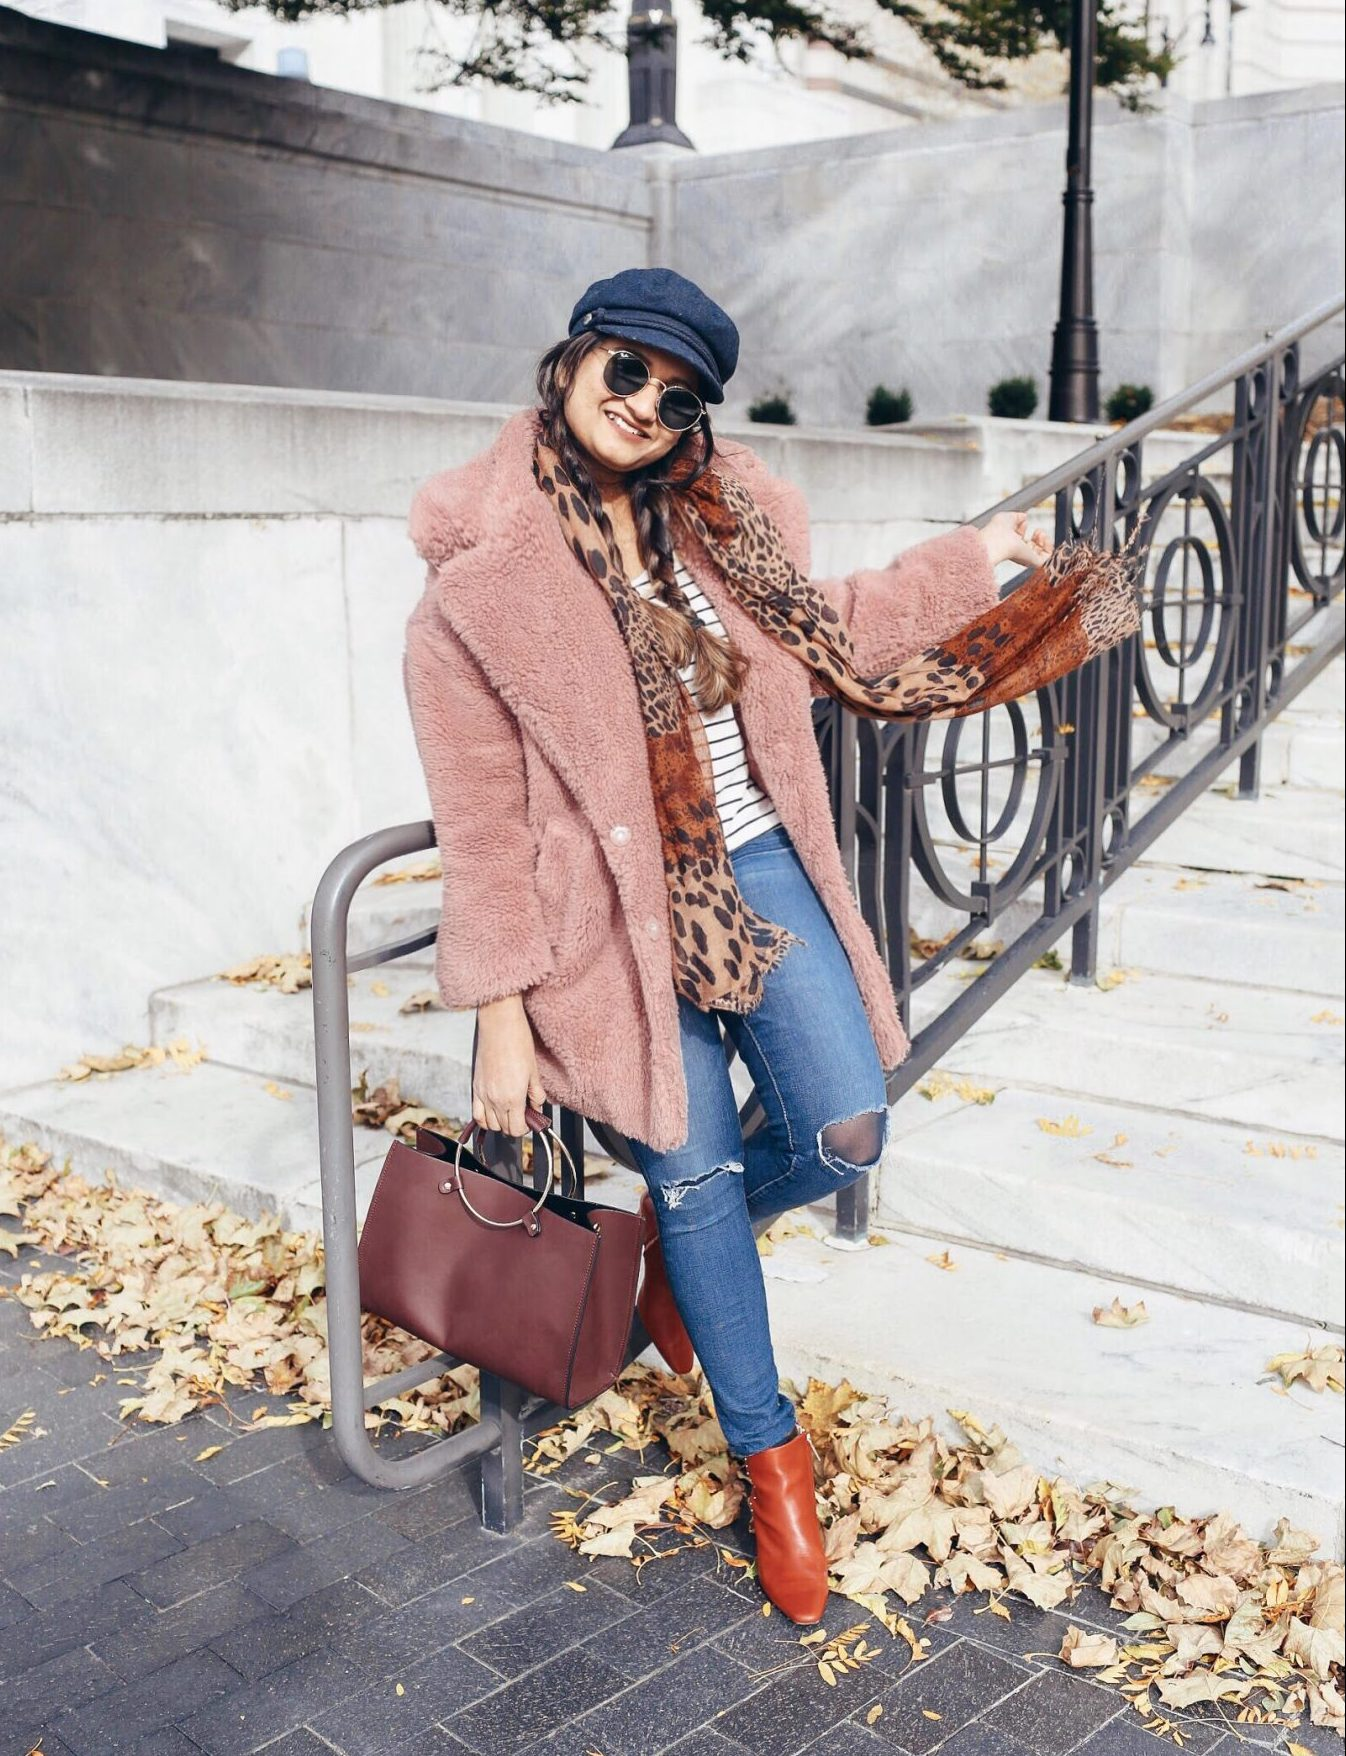 How to wear leopard scarf in stylish ways | The Leopard Print Trend featured by popular US modest fashion blogger, Dreaming Loud